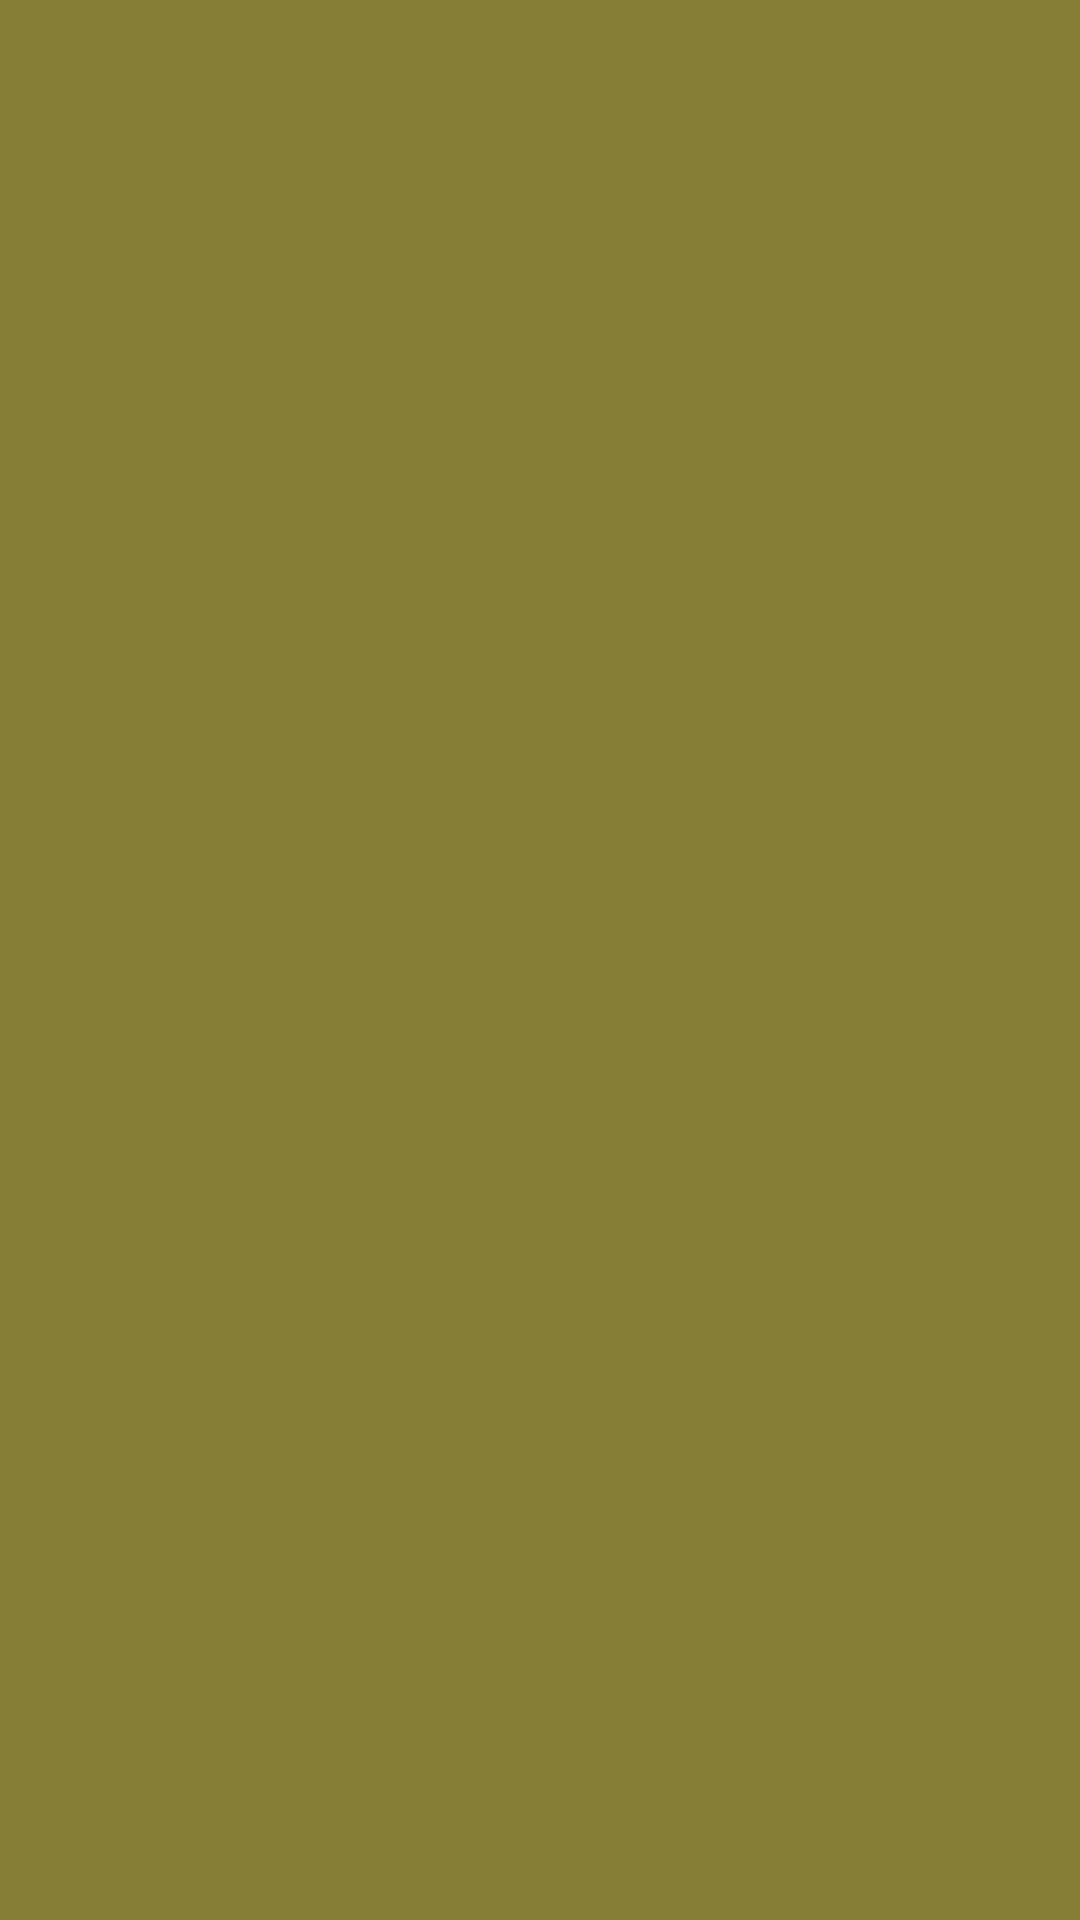 1080x1920 Old Moss Green Solid Color Background